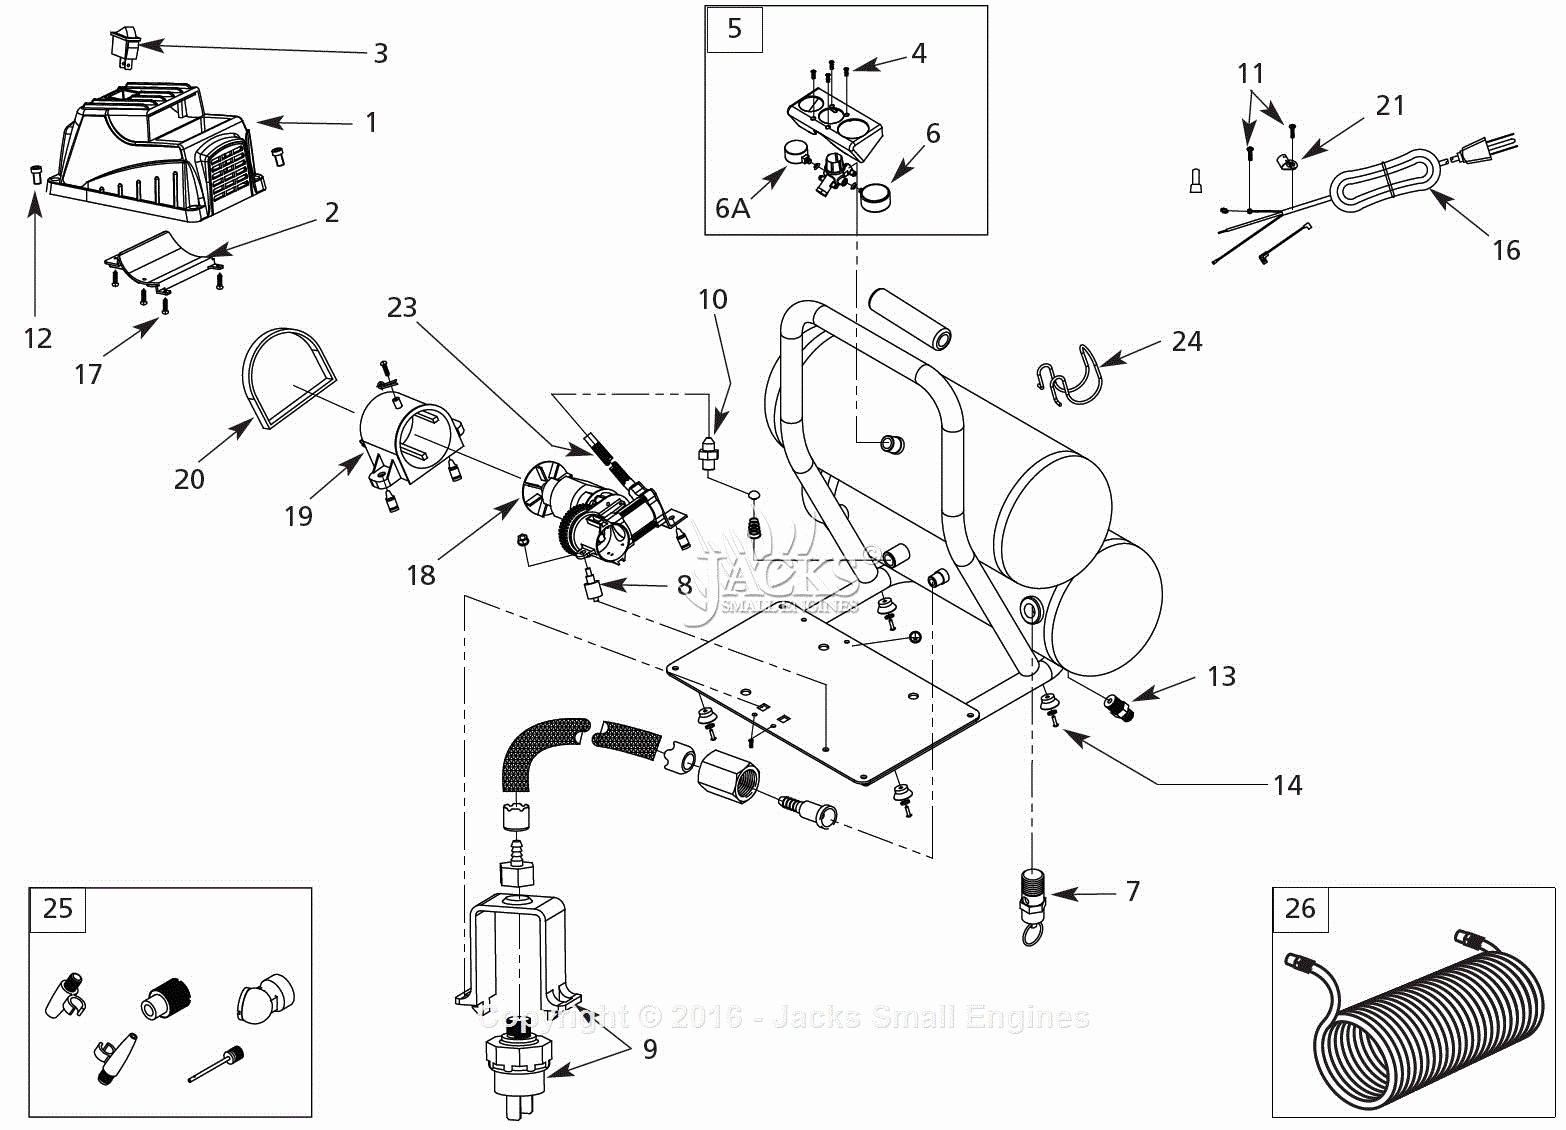 campbell hausfeld air compressor wiring diagram Collection-campbell hausfeld air pressor wiring diagram Download Air pressor Diagram Lovely Campbell Hausfeld Fp Parts 20-s